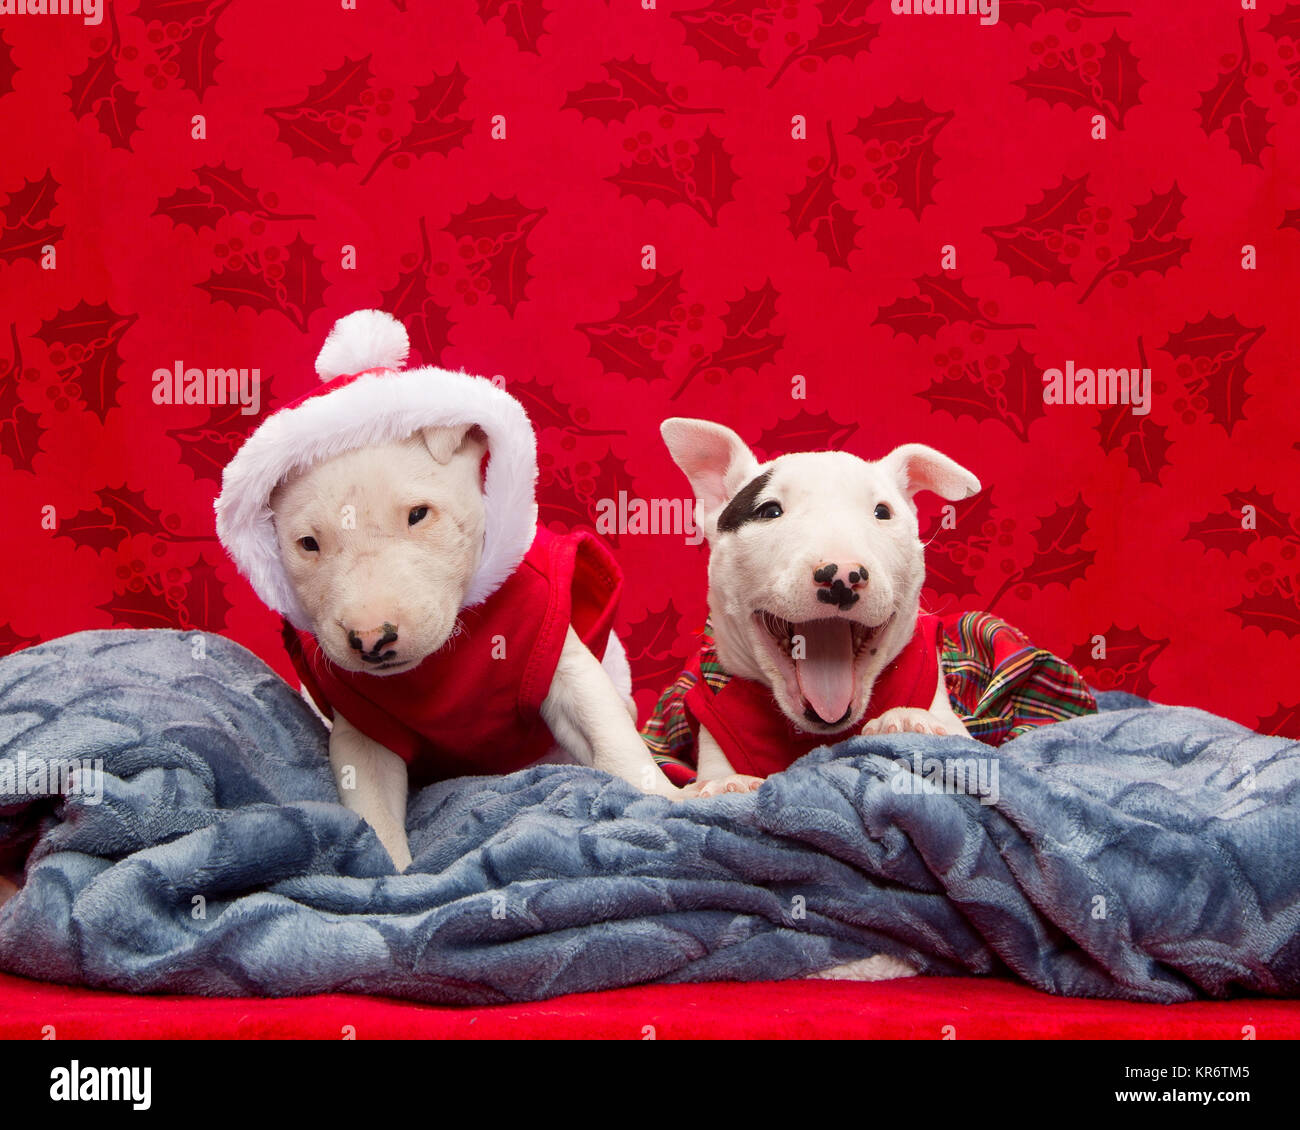 Two bull terrier puppies trying to get good for their Christmas photo - Stock Image